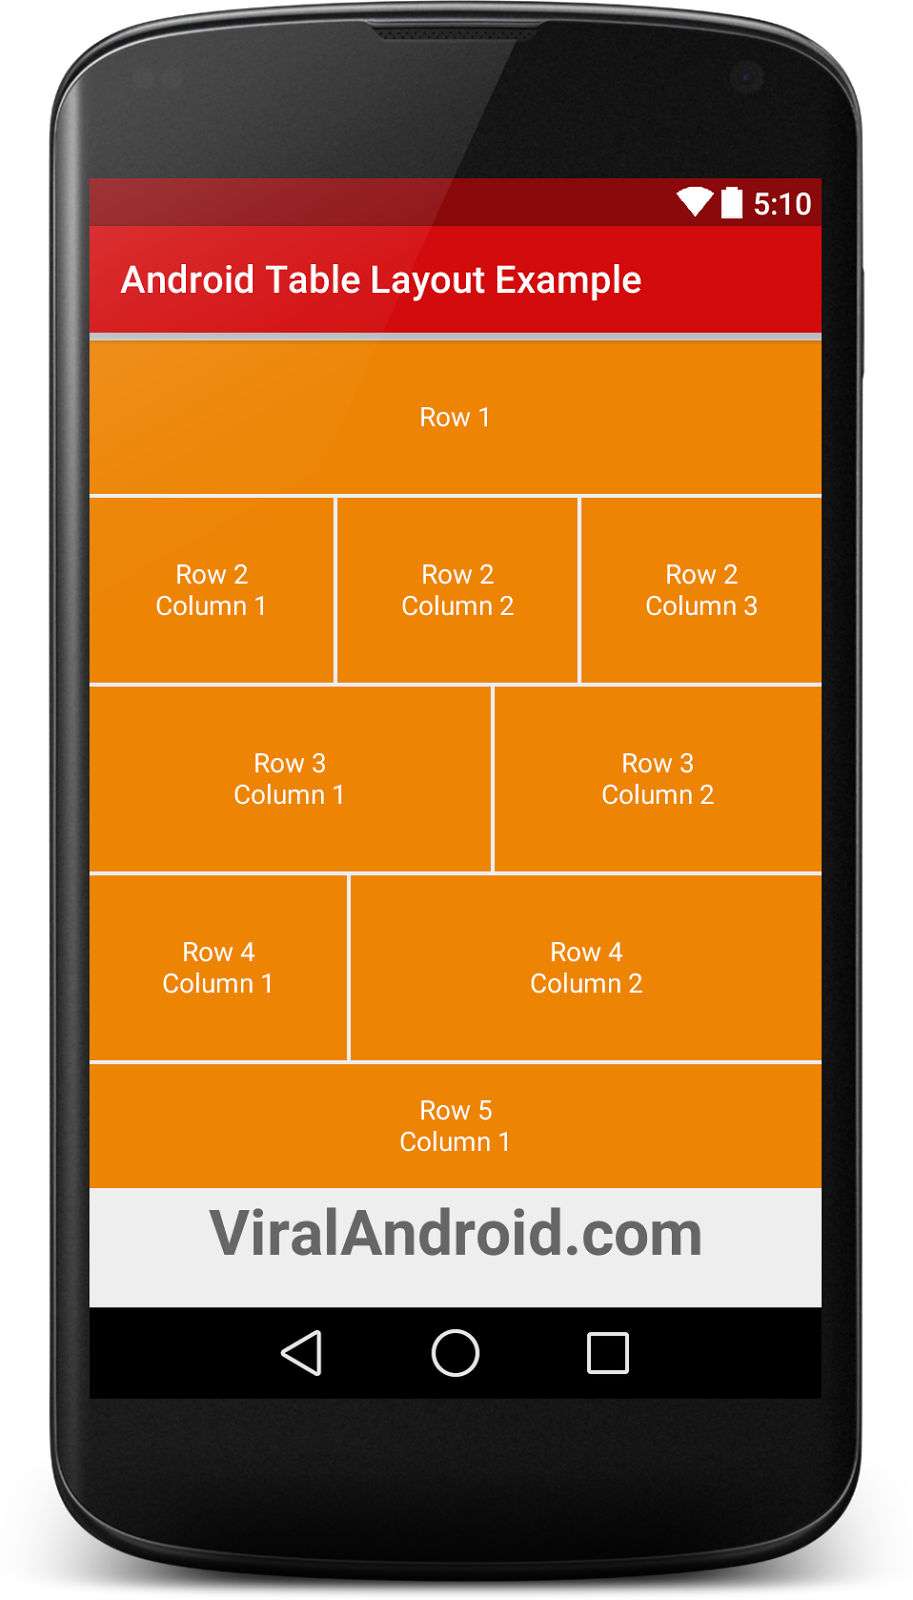 Android Table Layout Example | Viral Android – Tutorials